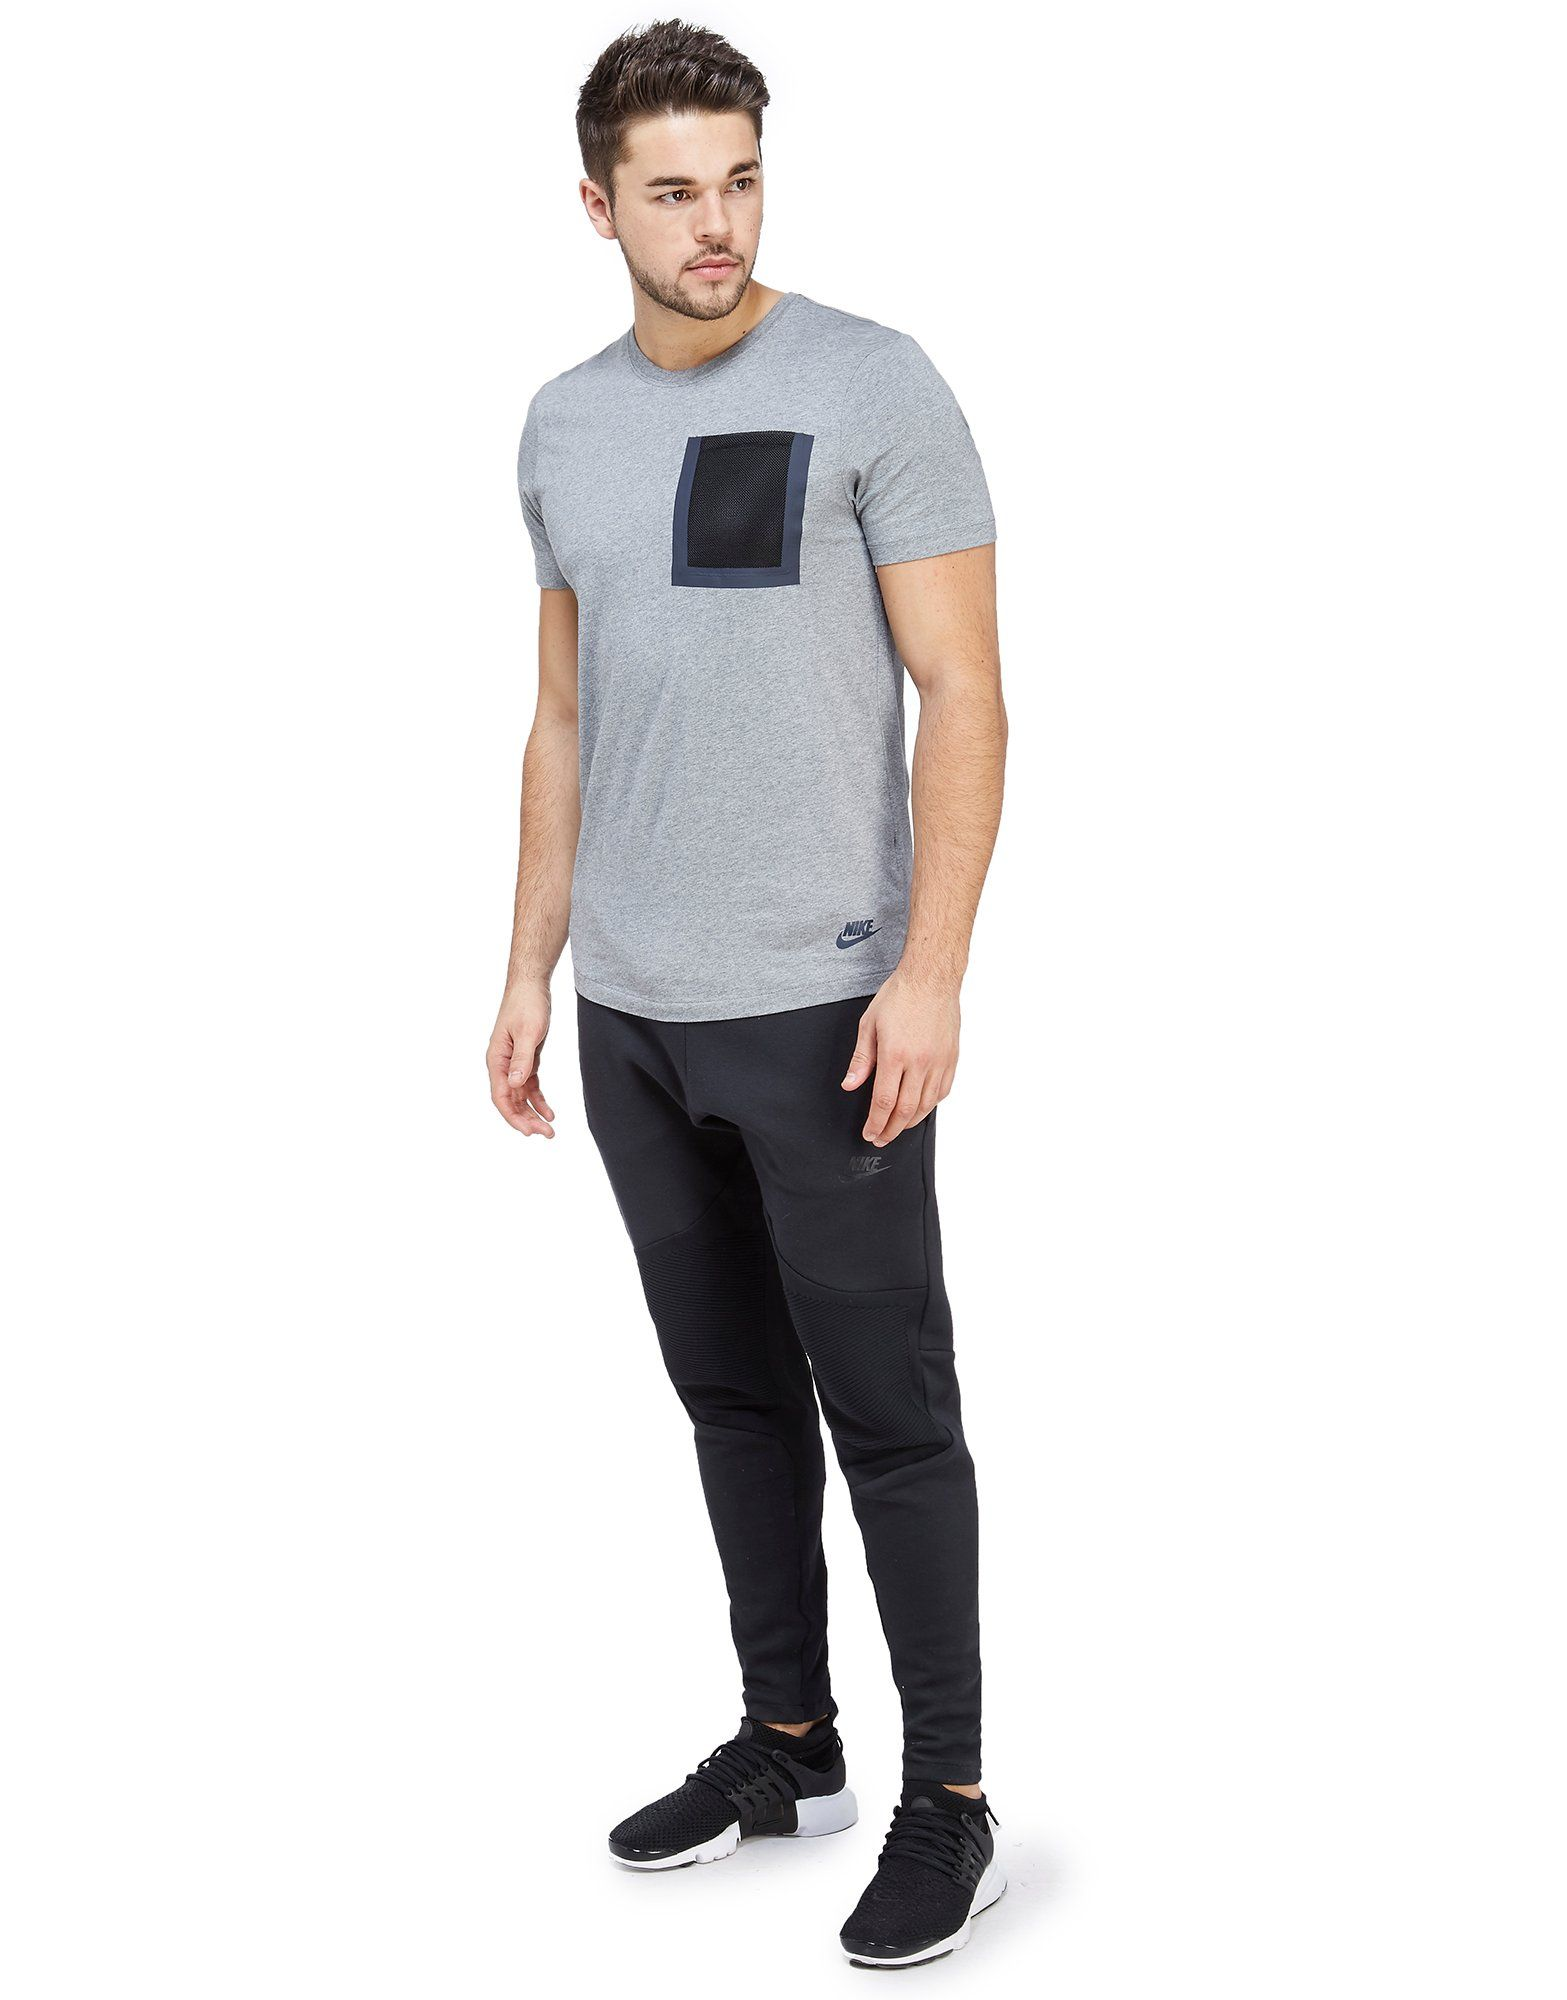 Nike Tech Hypermesh Pocket T-Shirt